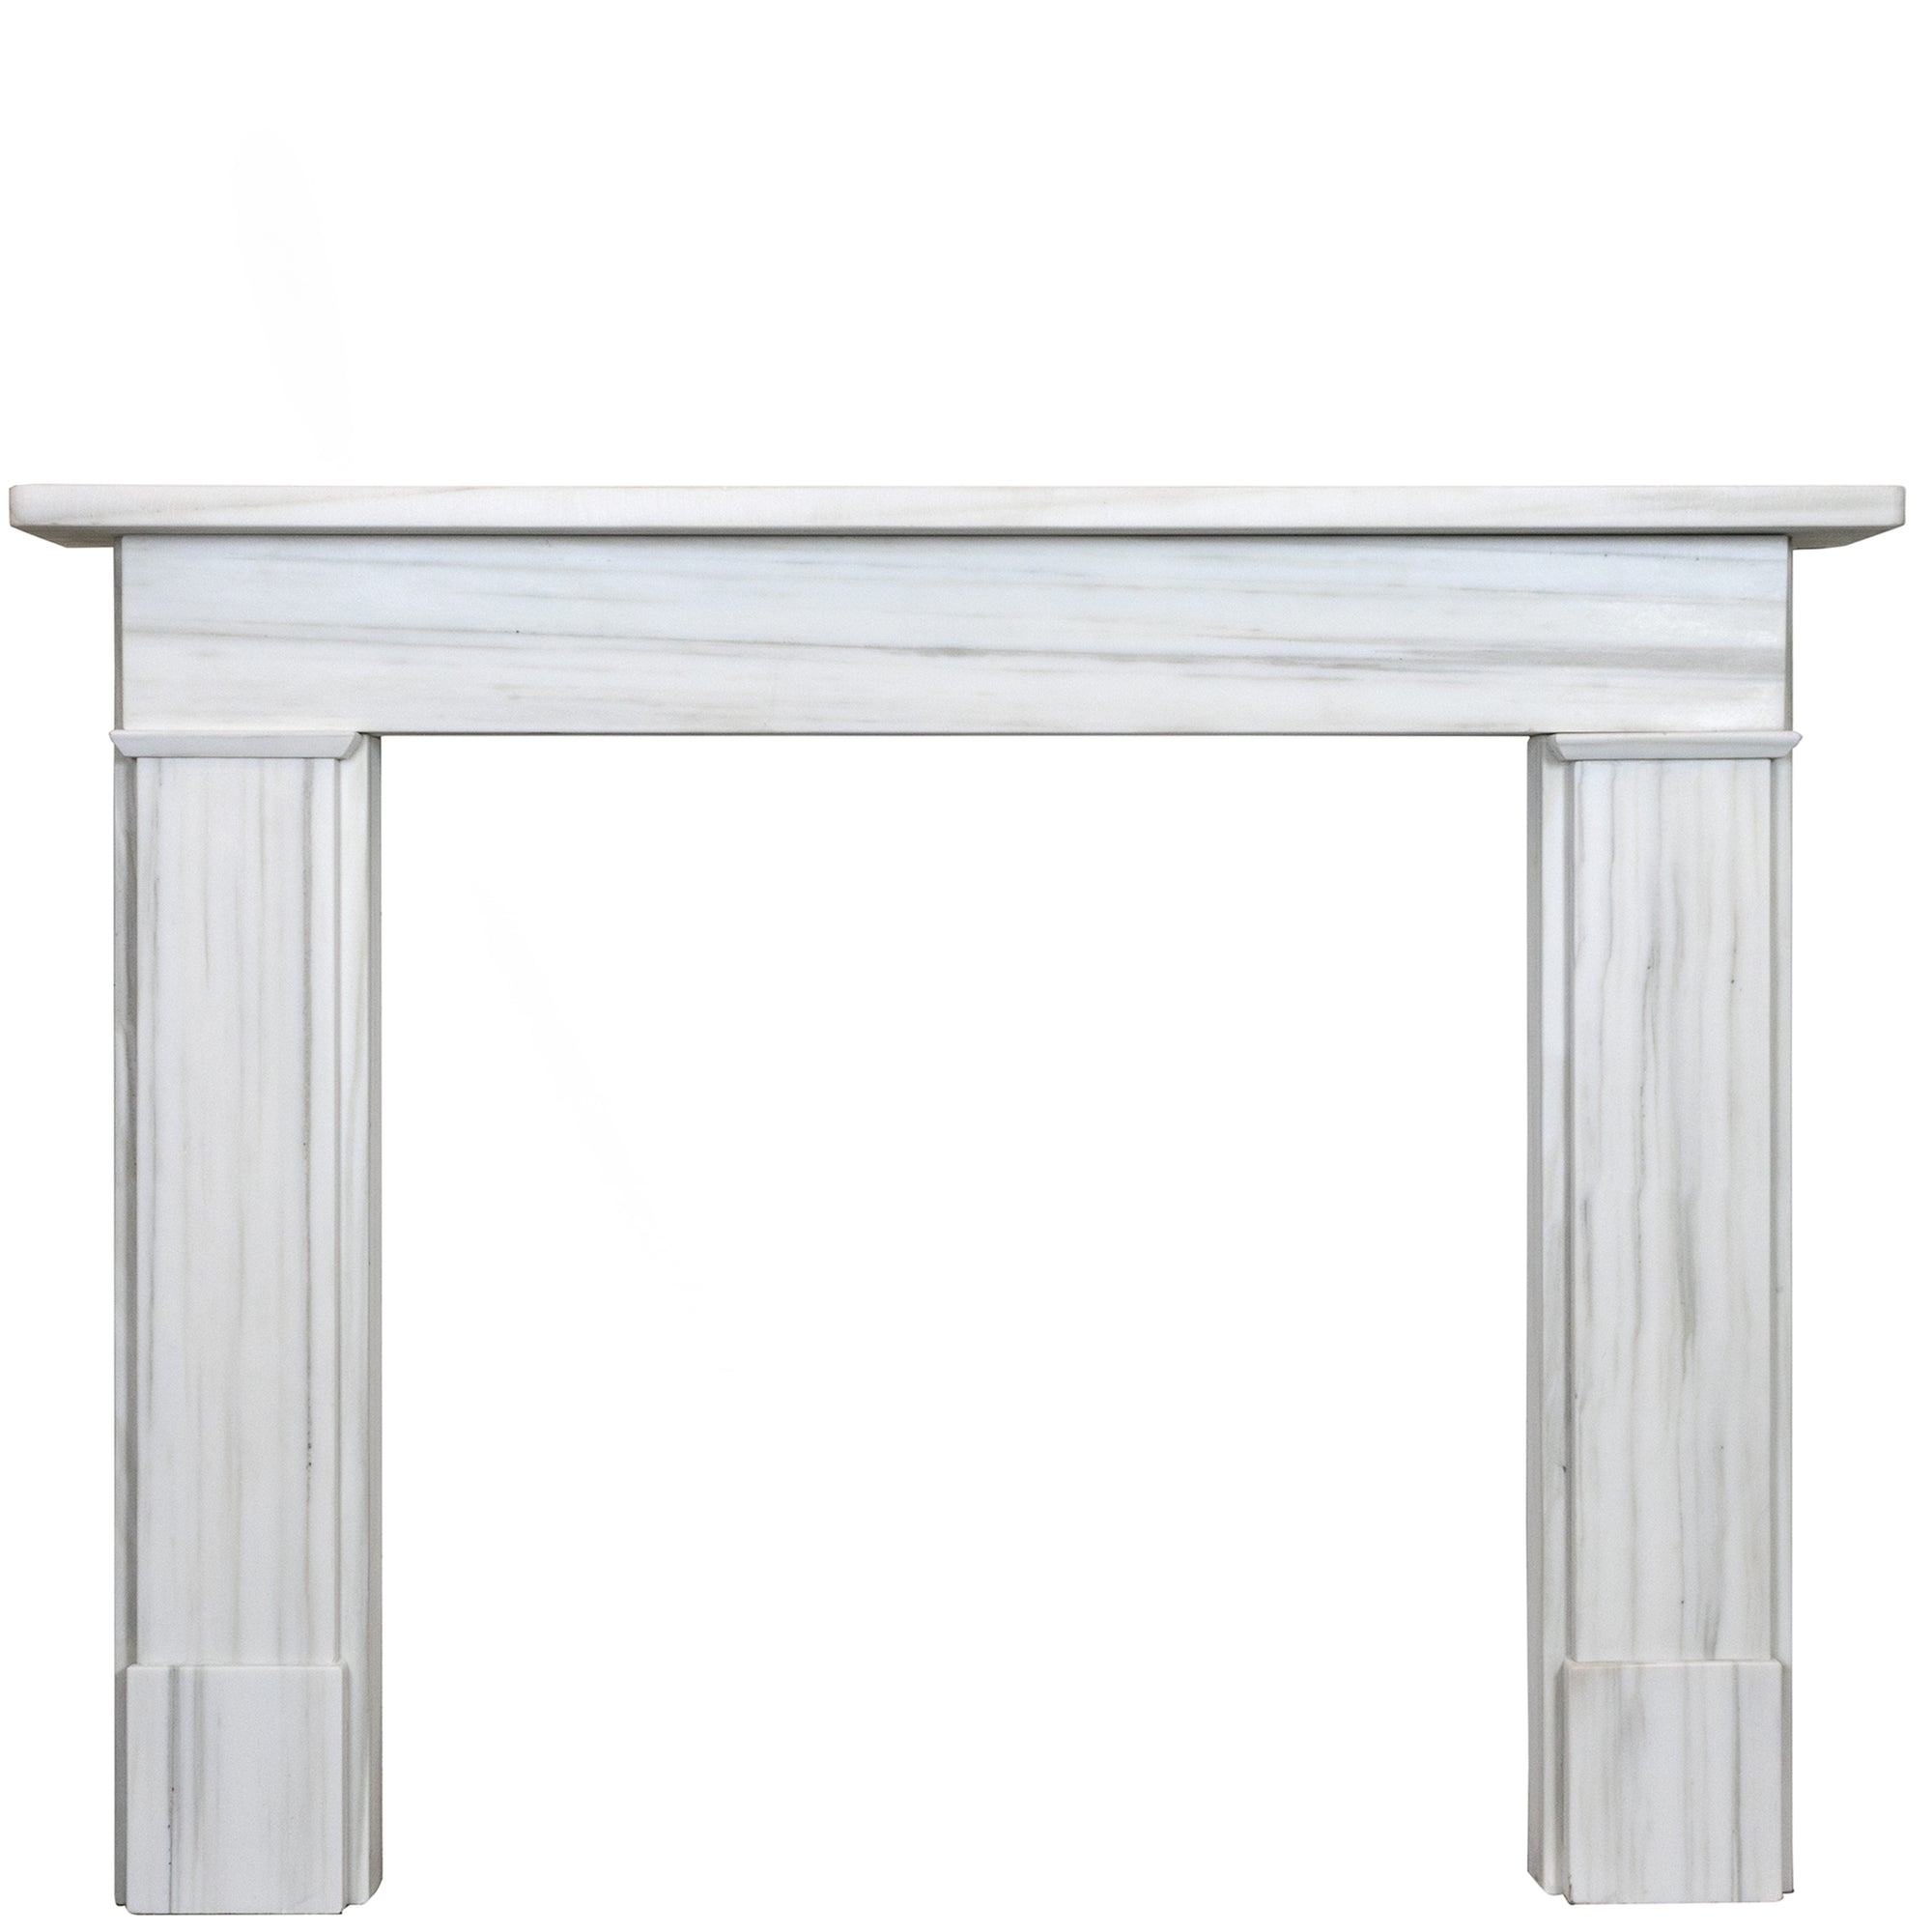 Georgian Style Pentelikon Marble Chimneypiece | The Architectural Forum